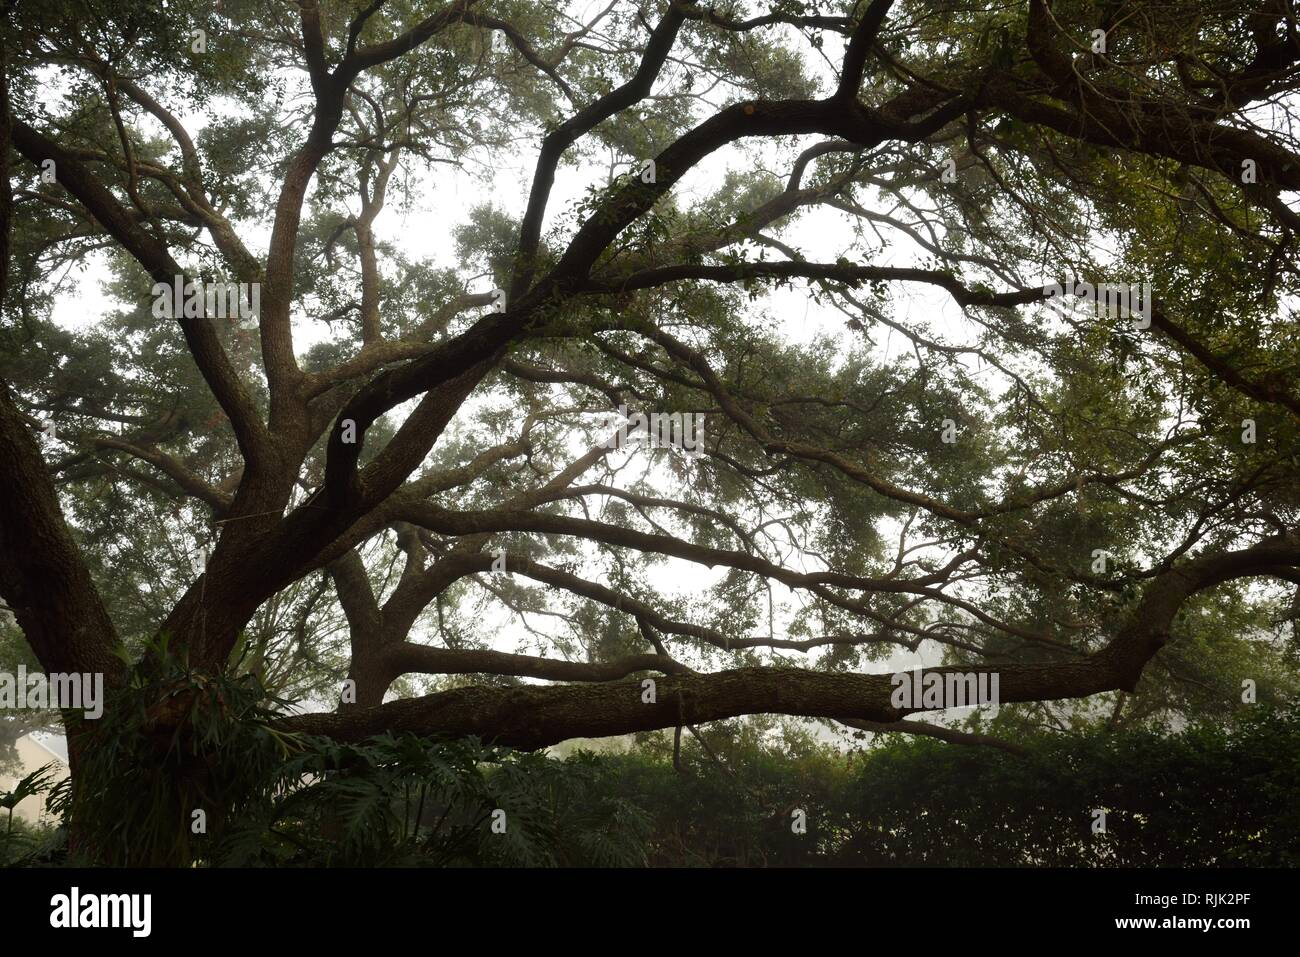 Tall sprawling Live Oak tree and long crooked branches with a misty background in Florida, USA. - Stock Image